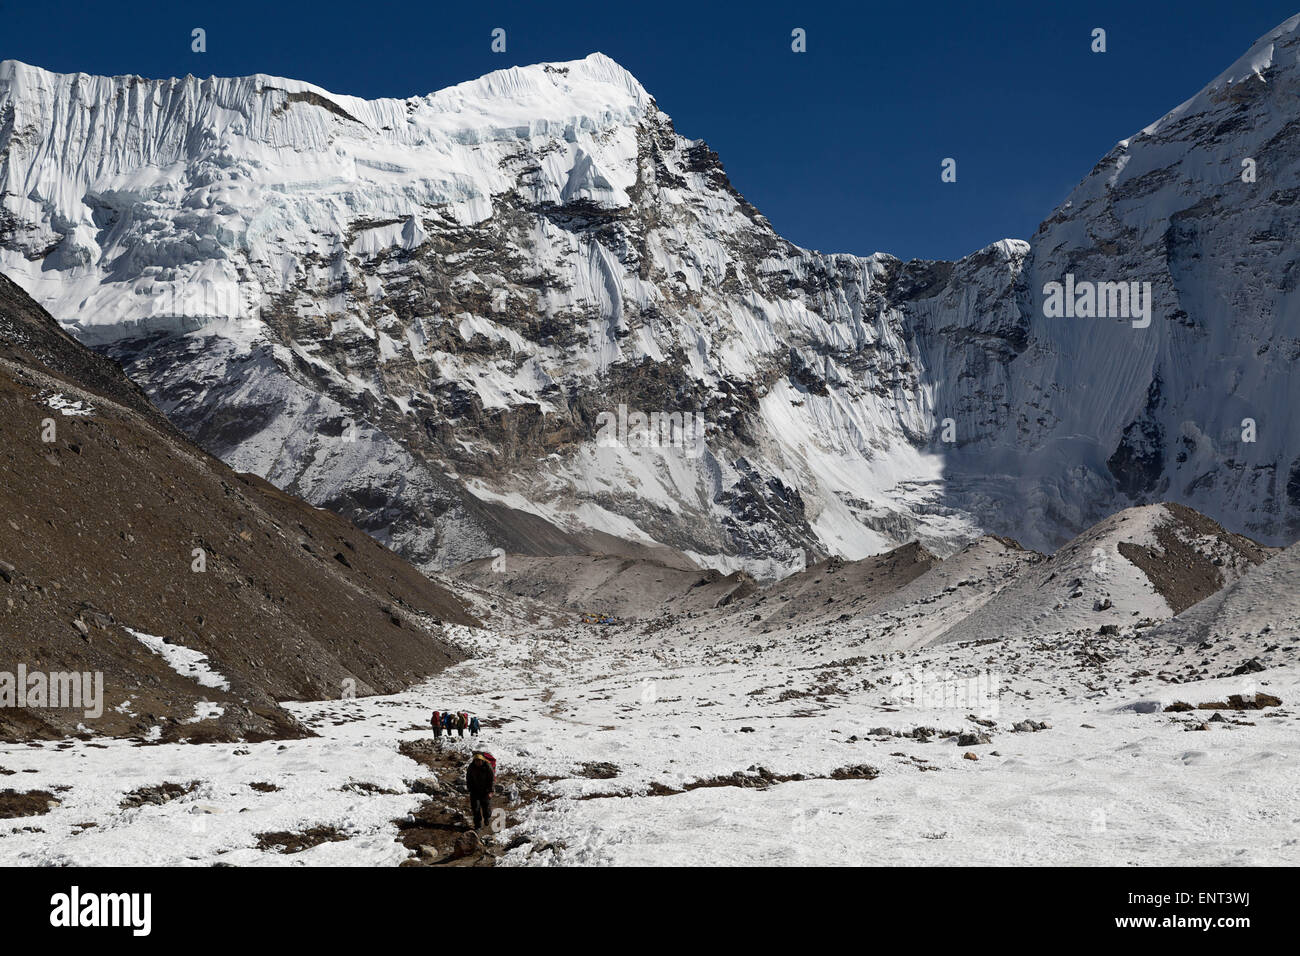 Trekking under Num Ri (6635m), Everest Region, Nepal - Stock Image